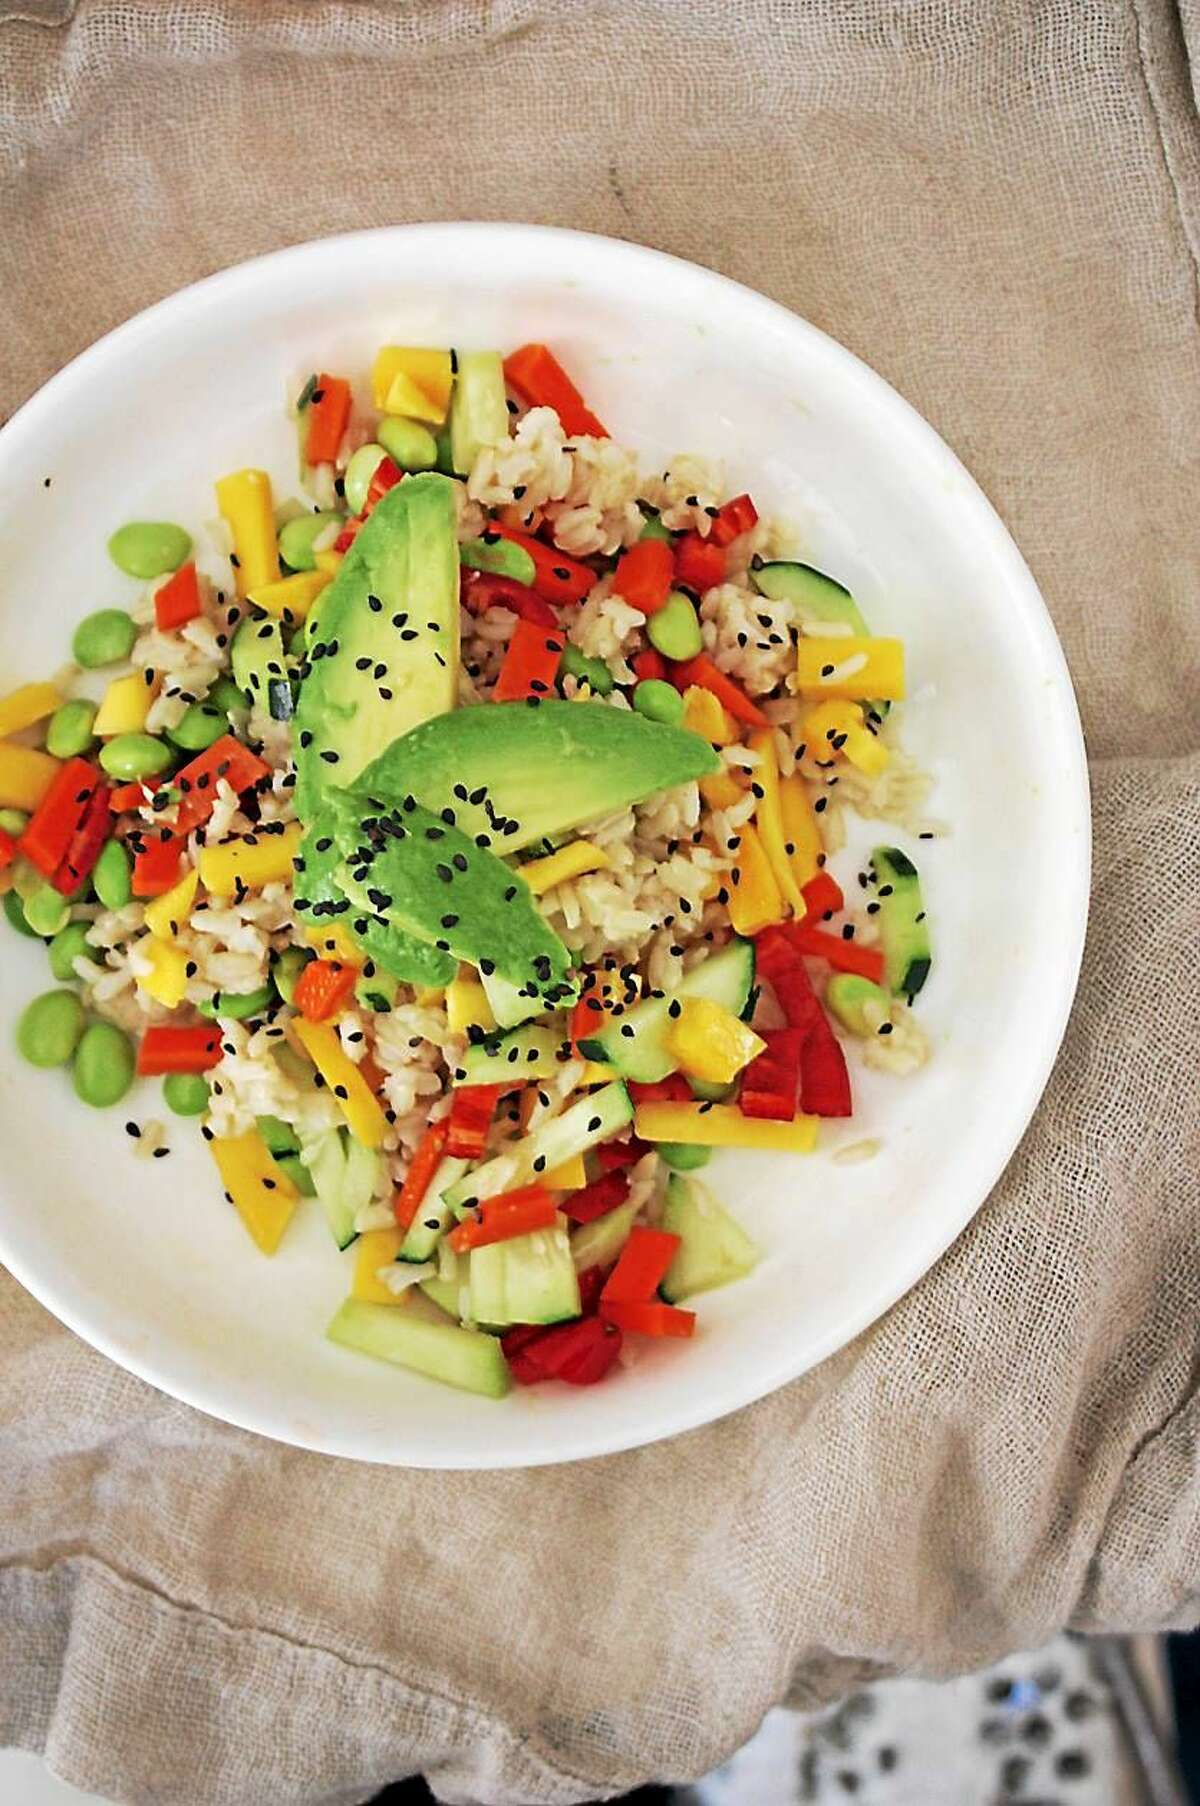 Garnished with avocado slices and black sesame seeds, the complementary textures of this Cold Grain Salad elevate an ordinary lunch to a jazzy delight.